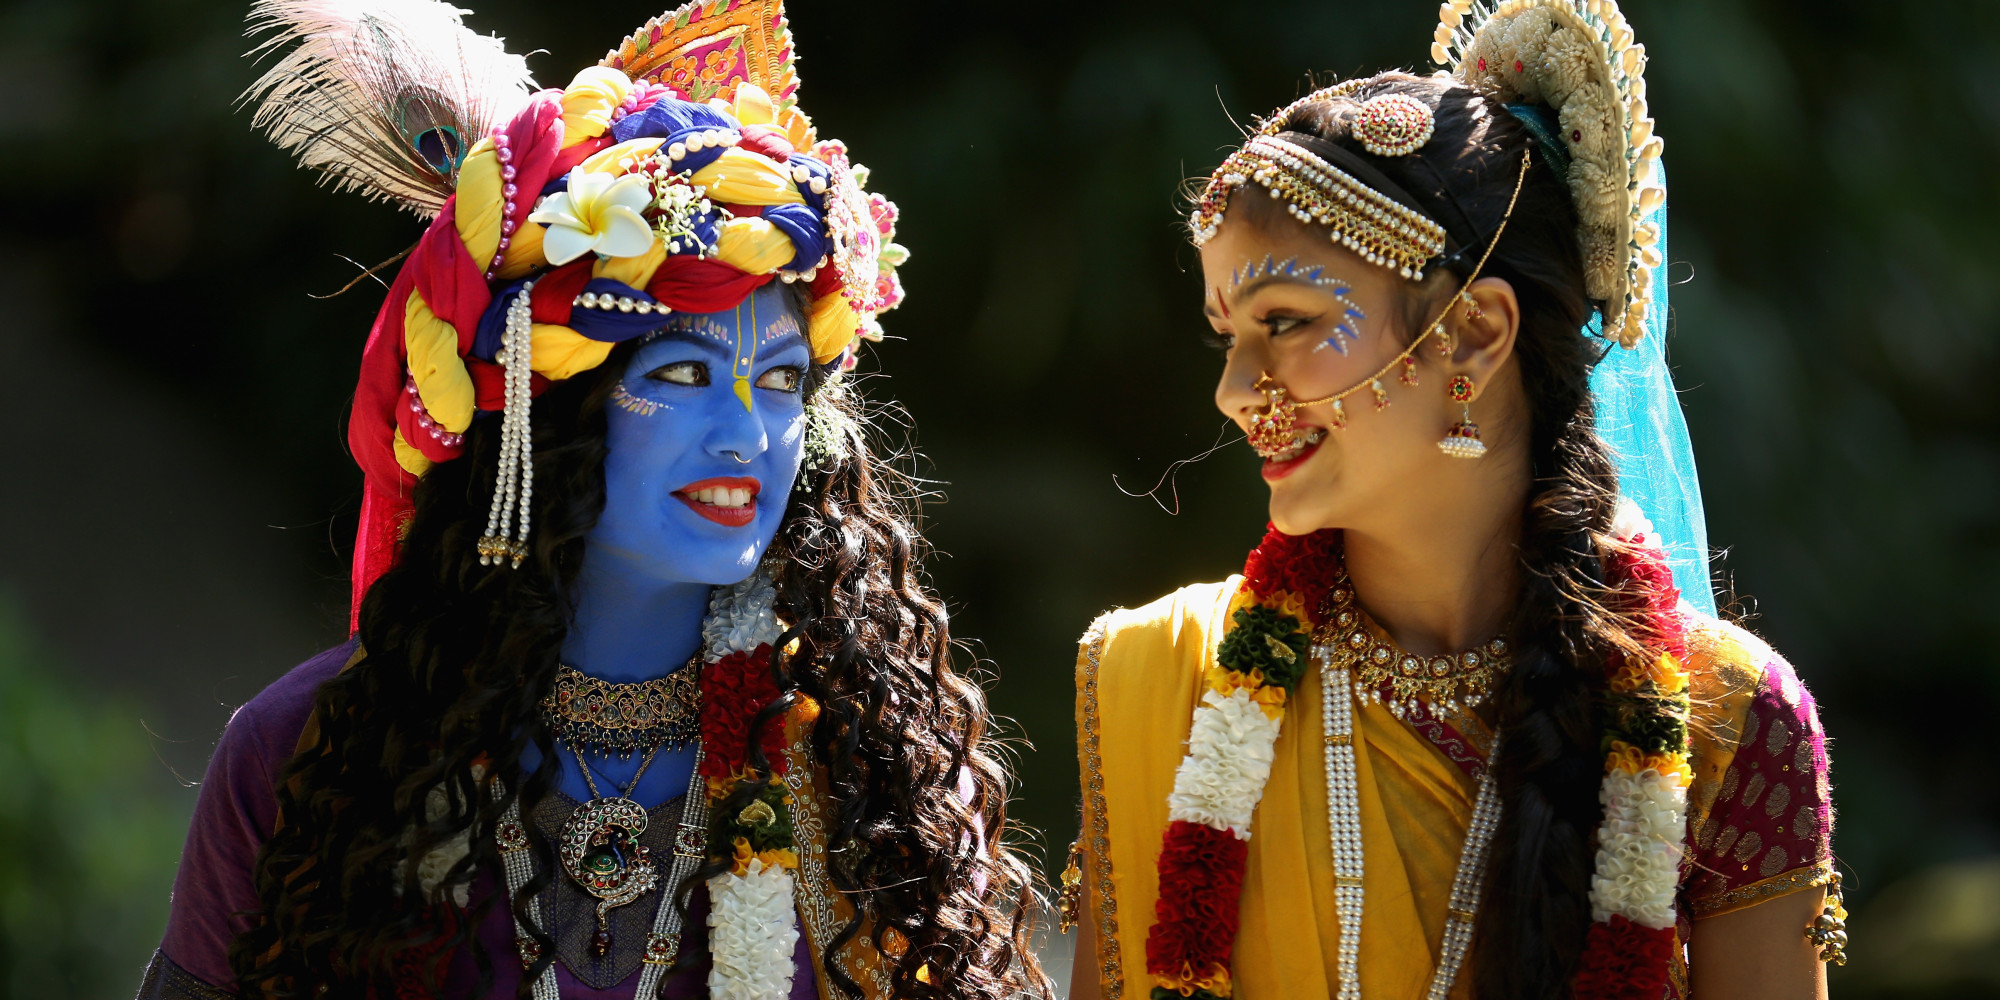 Devotees dressed as Krishna and Radha during Janmashtmi celebrations at the George Harrison Memorial Garden, Watford, England in 2013.